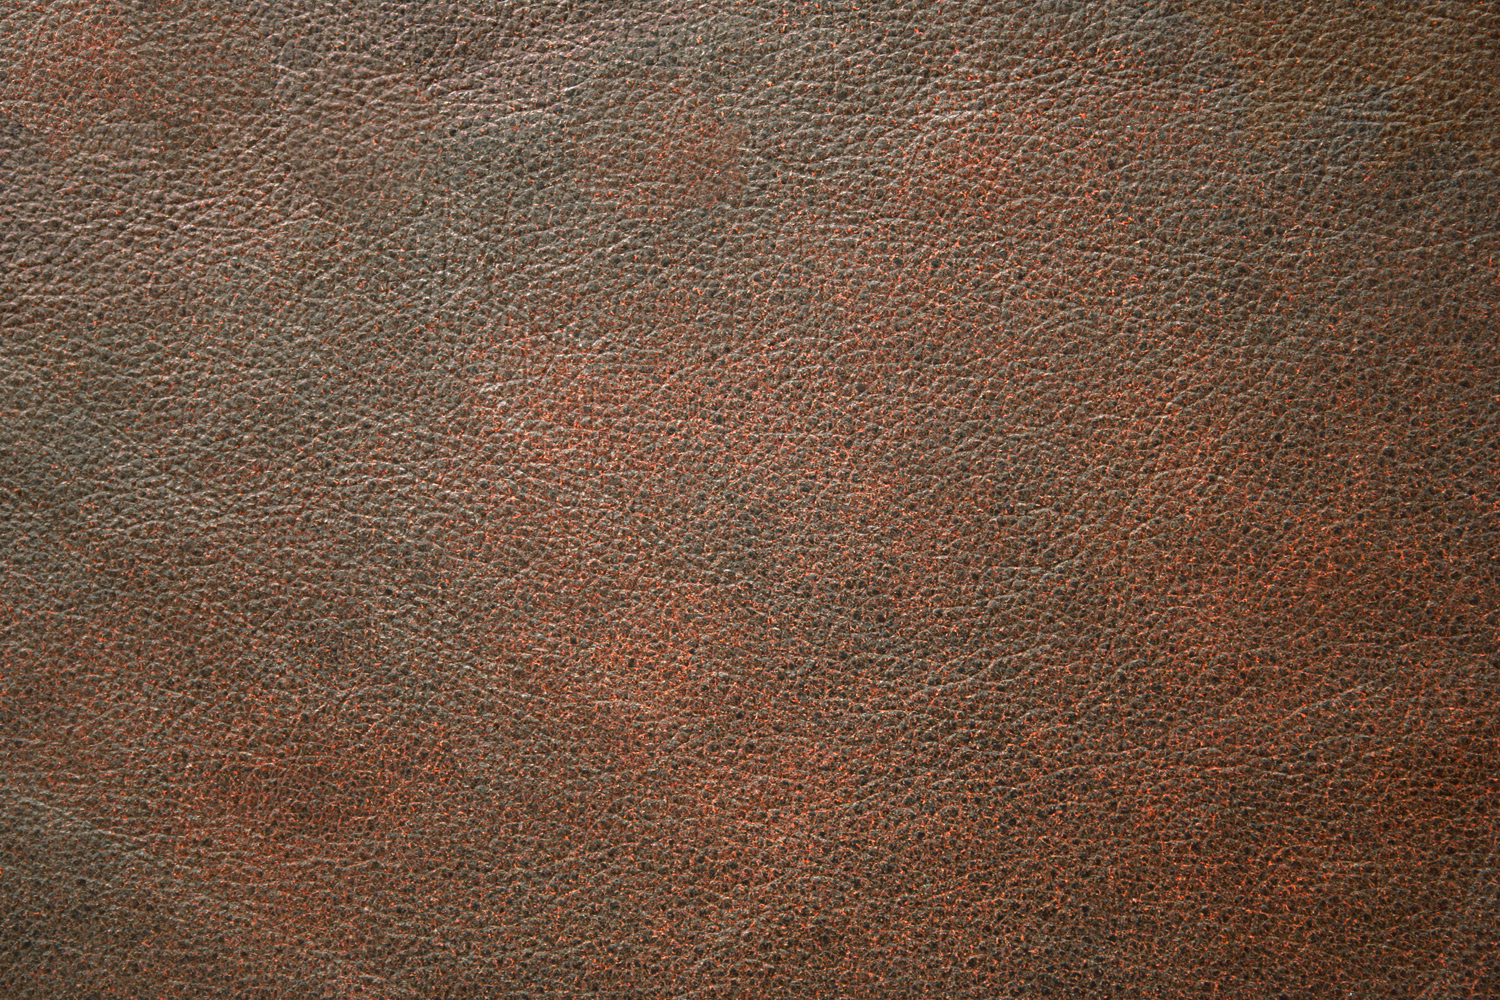 кожа текстура, фон, leather background, кожанный фон